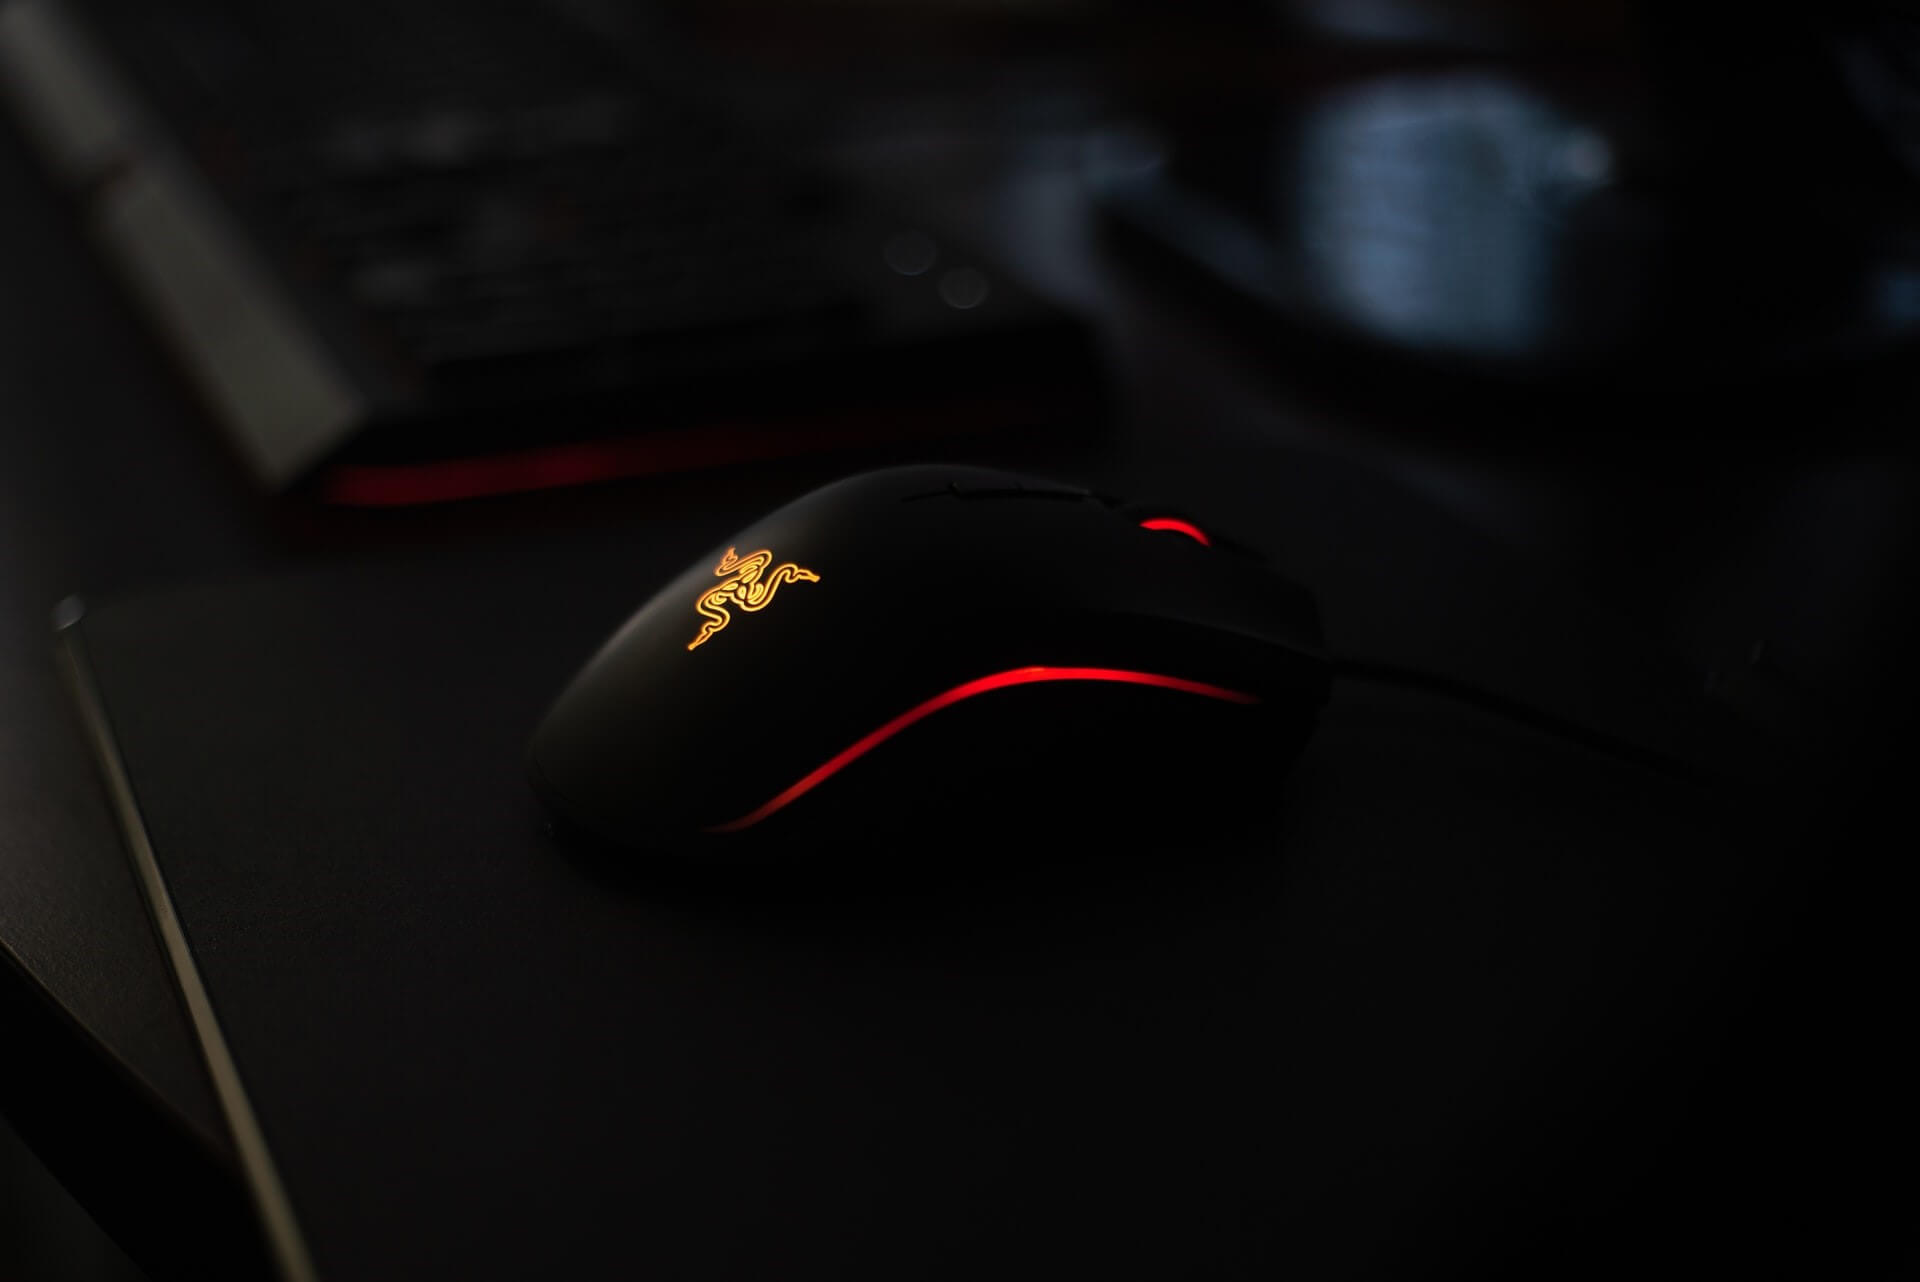 The Best Silent Click Gaming Mouse – [Top 7 Picks and Buying Guide]